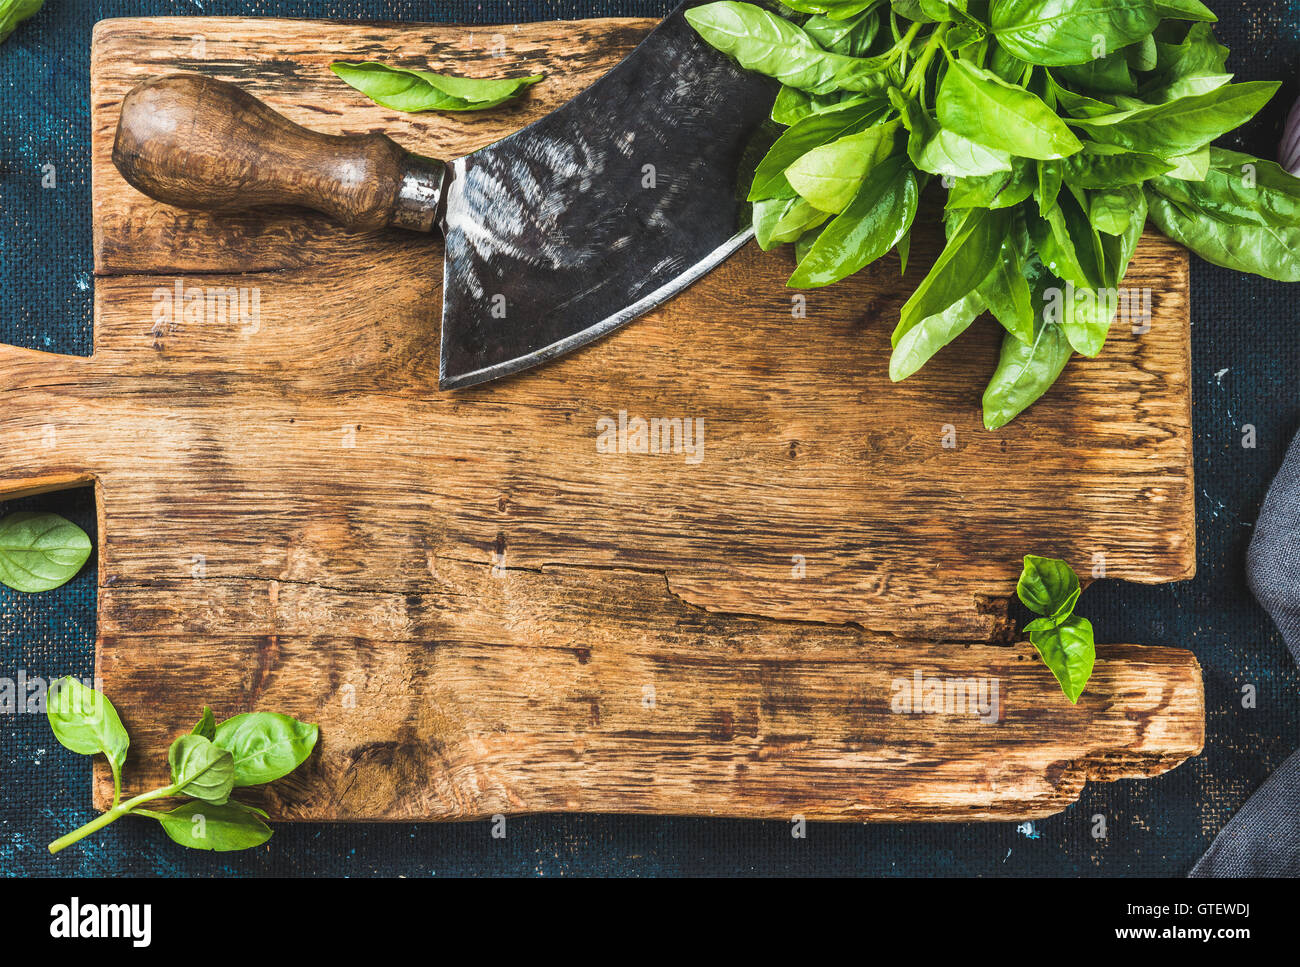 Fresh basil and vintage herb chopper on rustic wooden bord - Stock Image